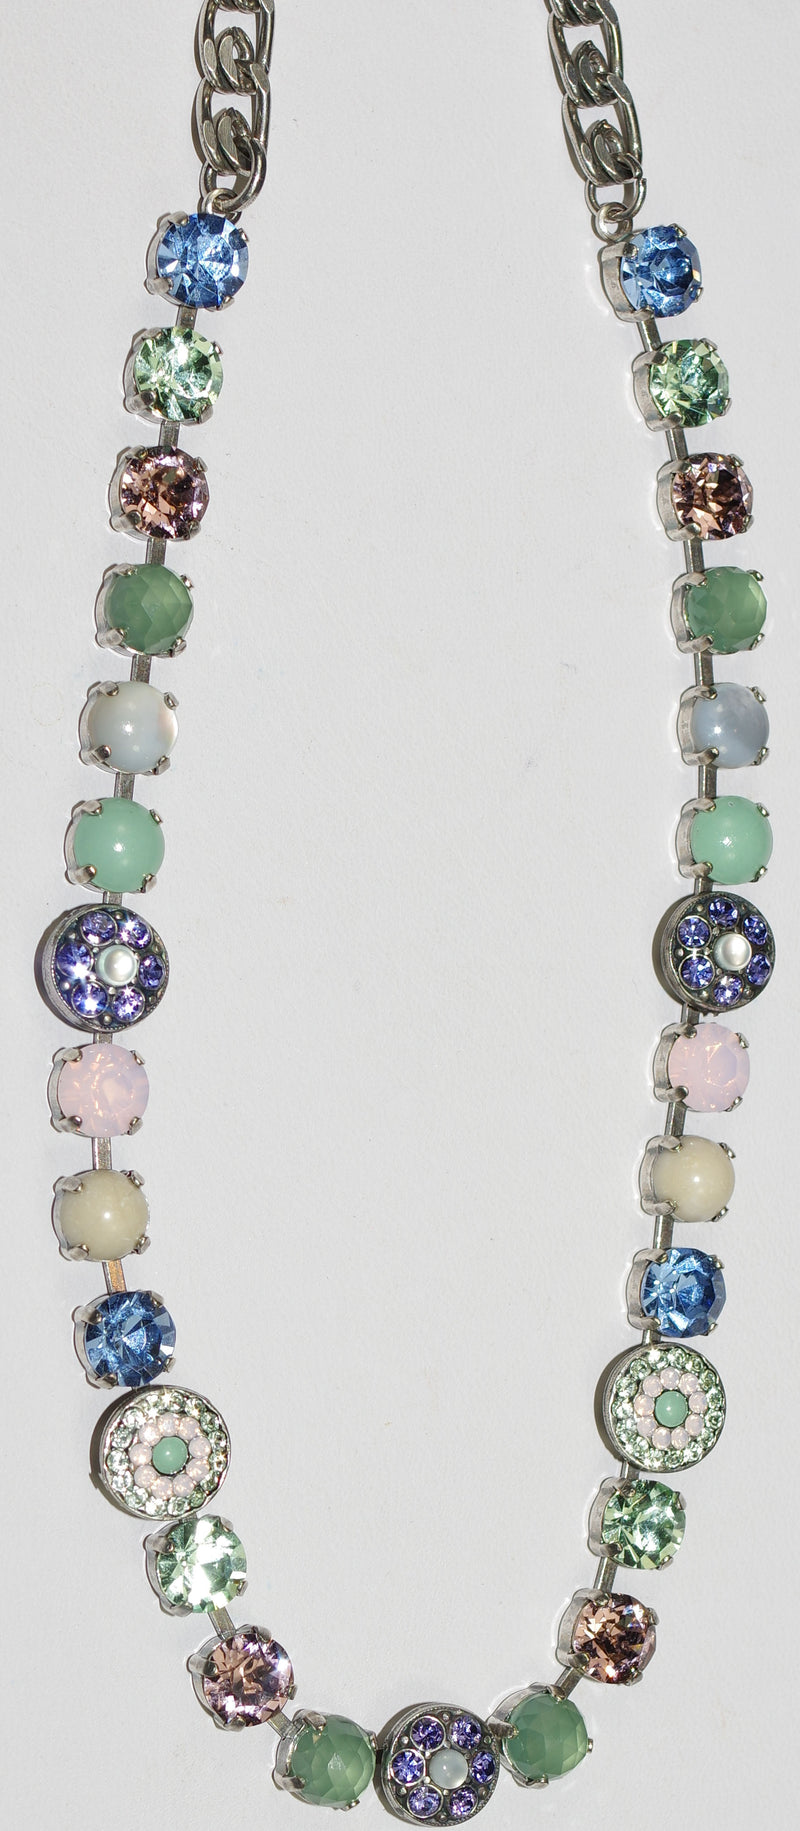 "MARIANA NECKLACE CALIFORNIA DREAMING: pink, pacific opal, blue, purple, green stones in silver setting, 17"" adjustable chain"